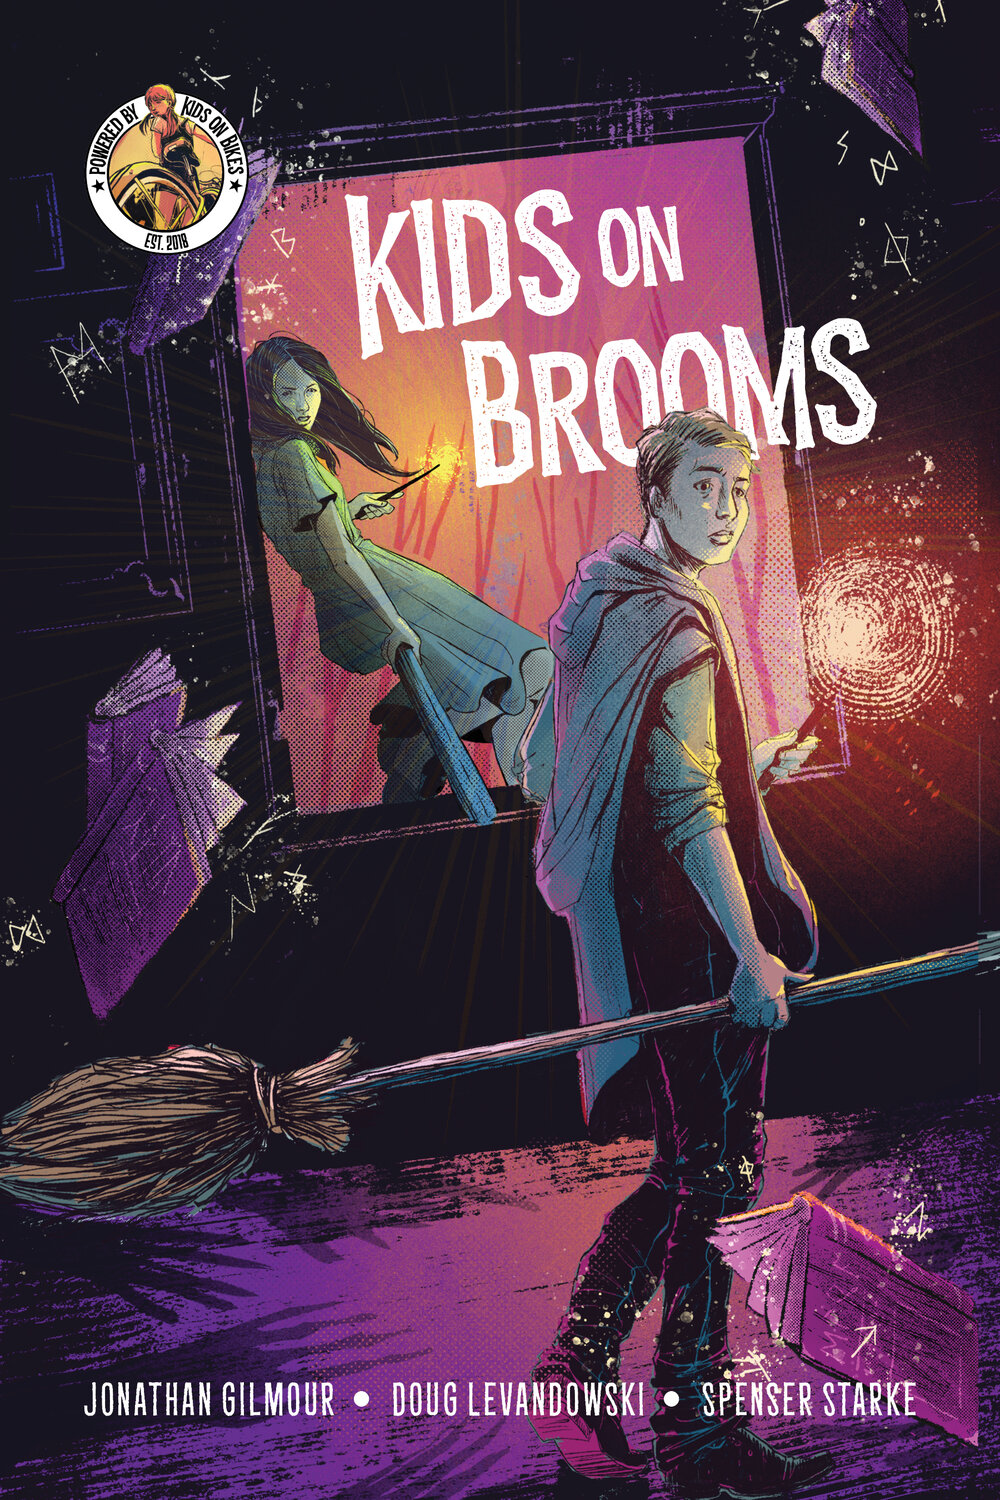 Kids on Brooms Cover Art